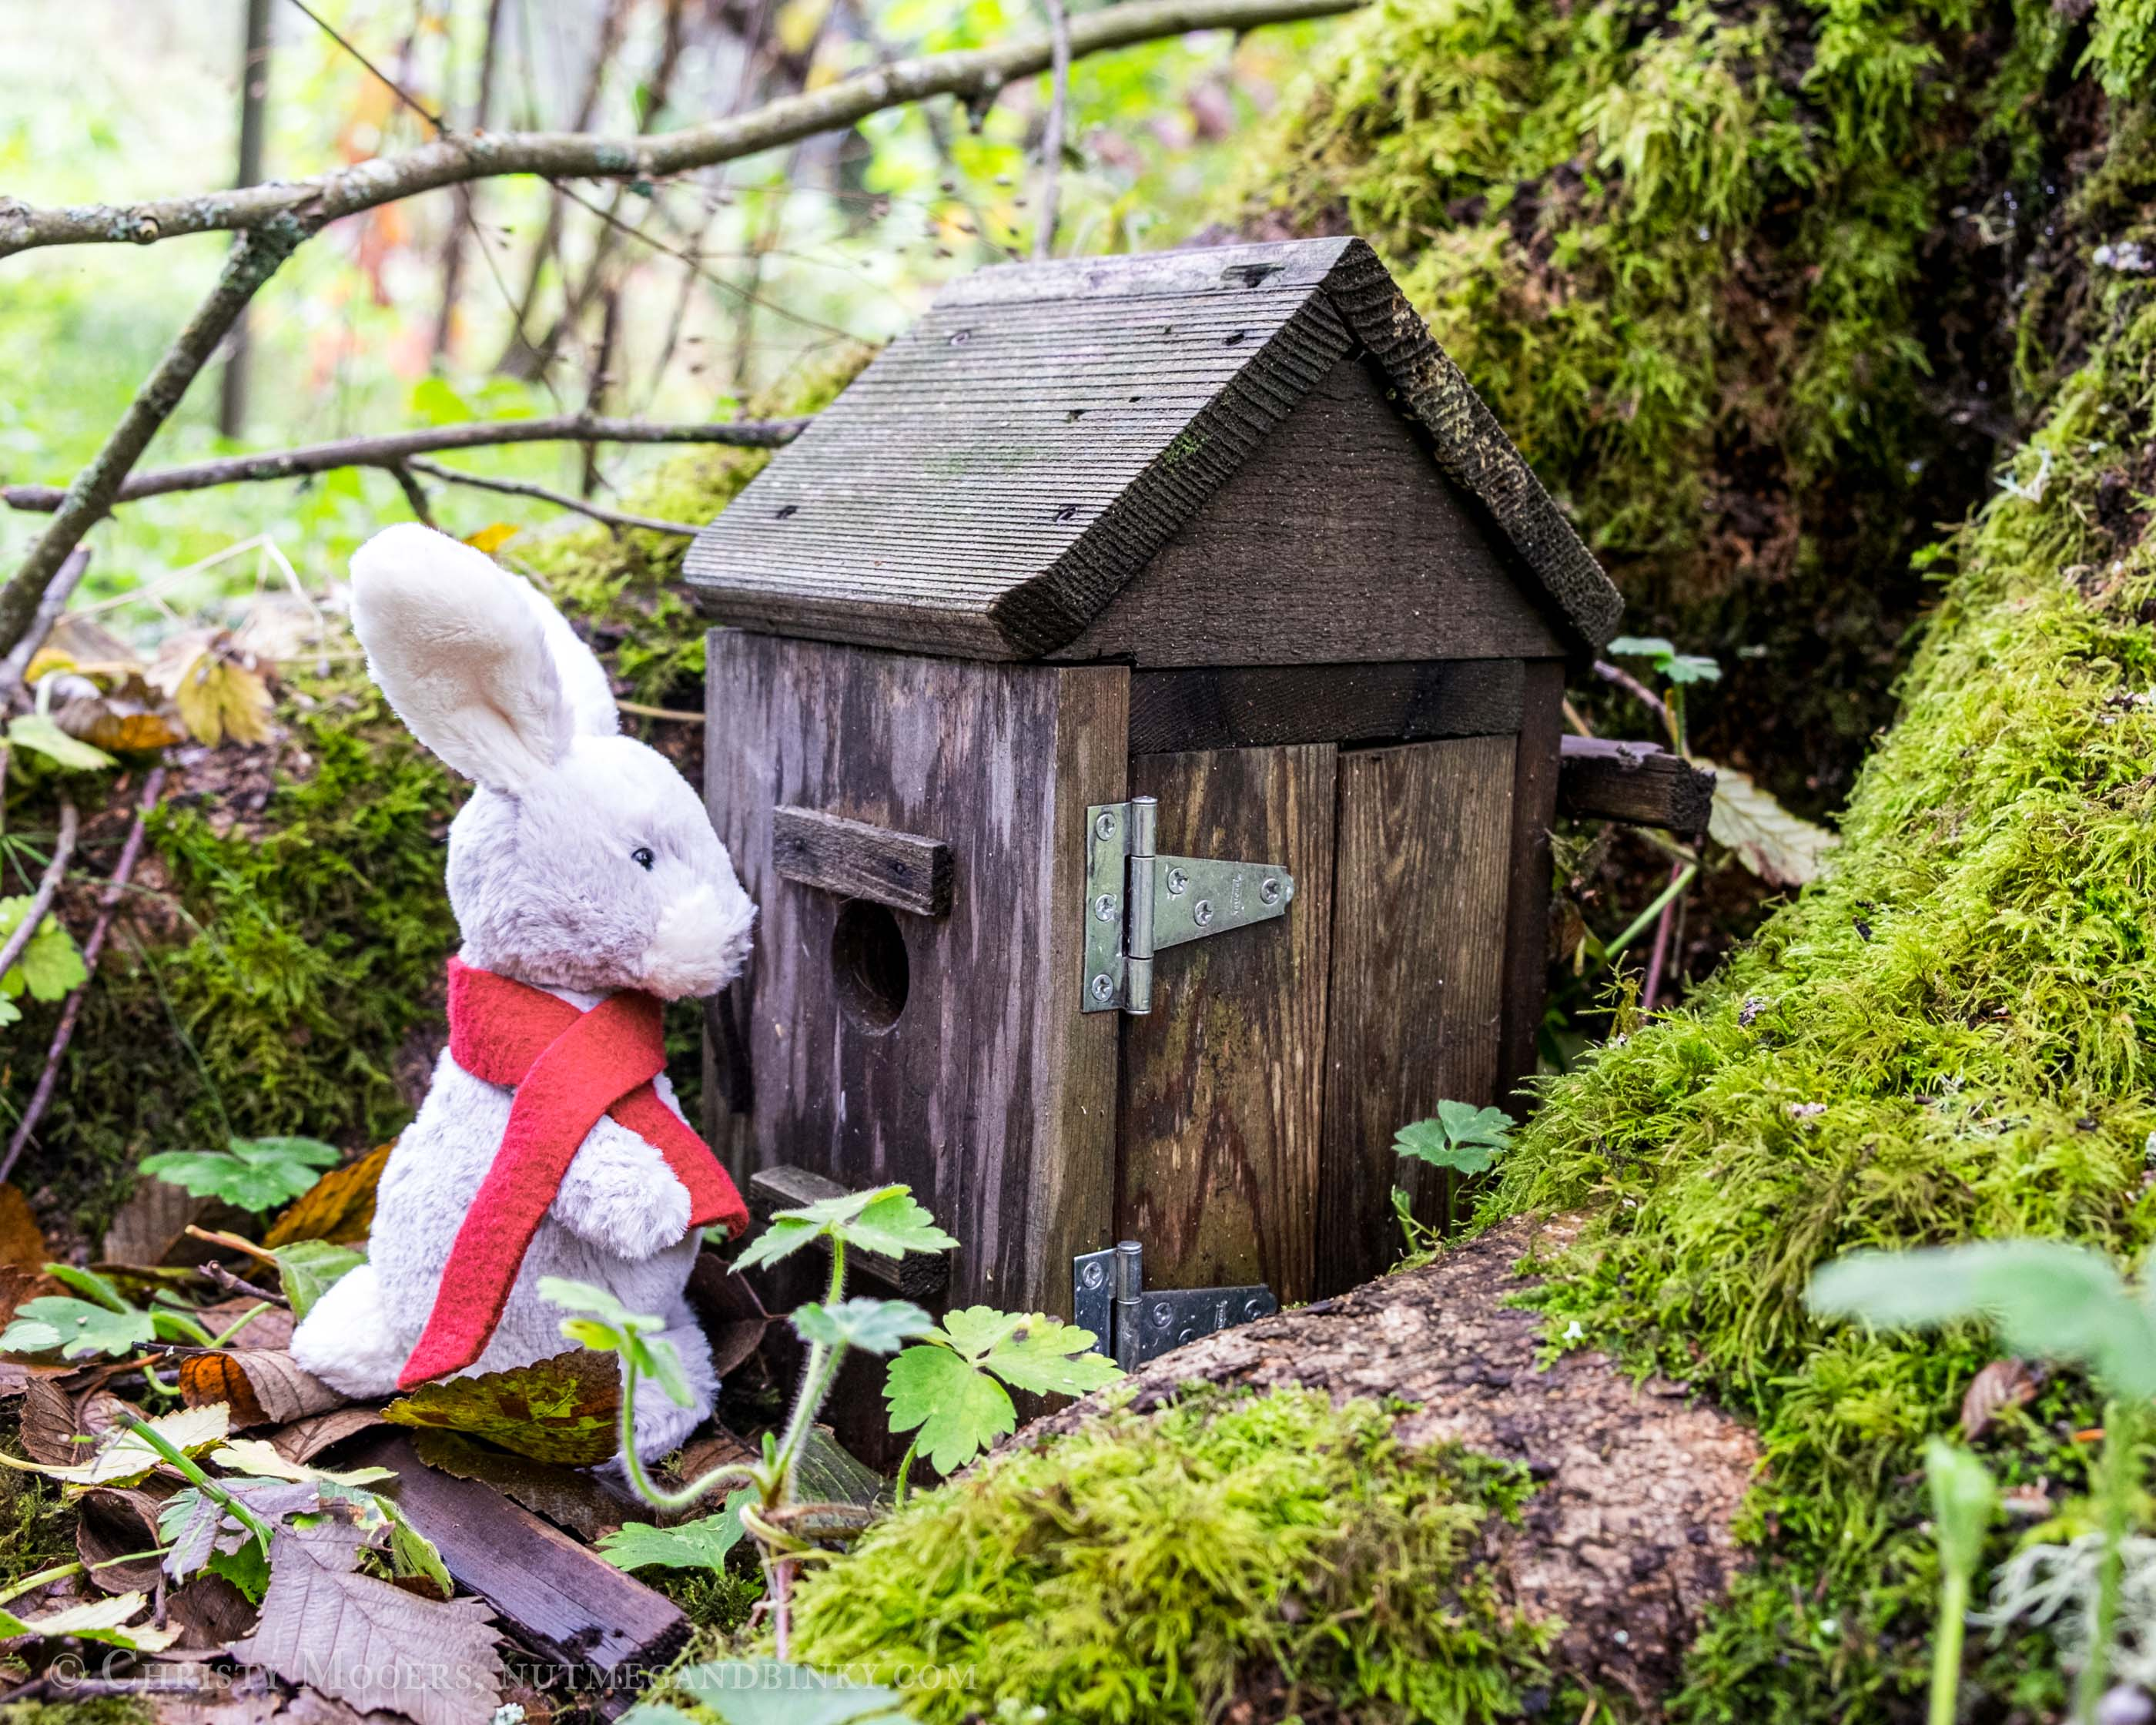 stuffed animal bunny wearing a scarf and visiting a birdhouse between the roots of a mossy tree